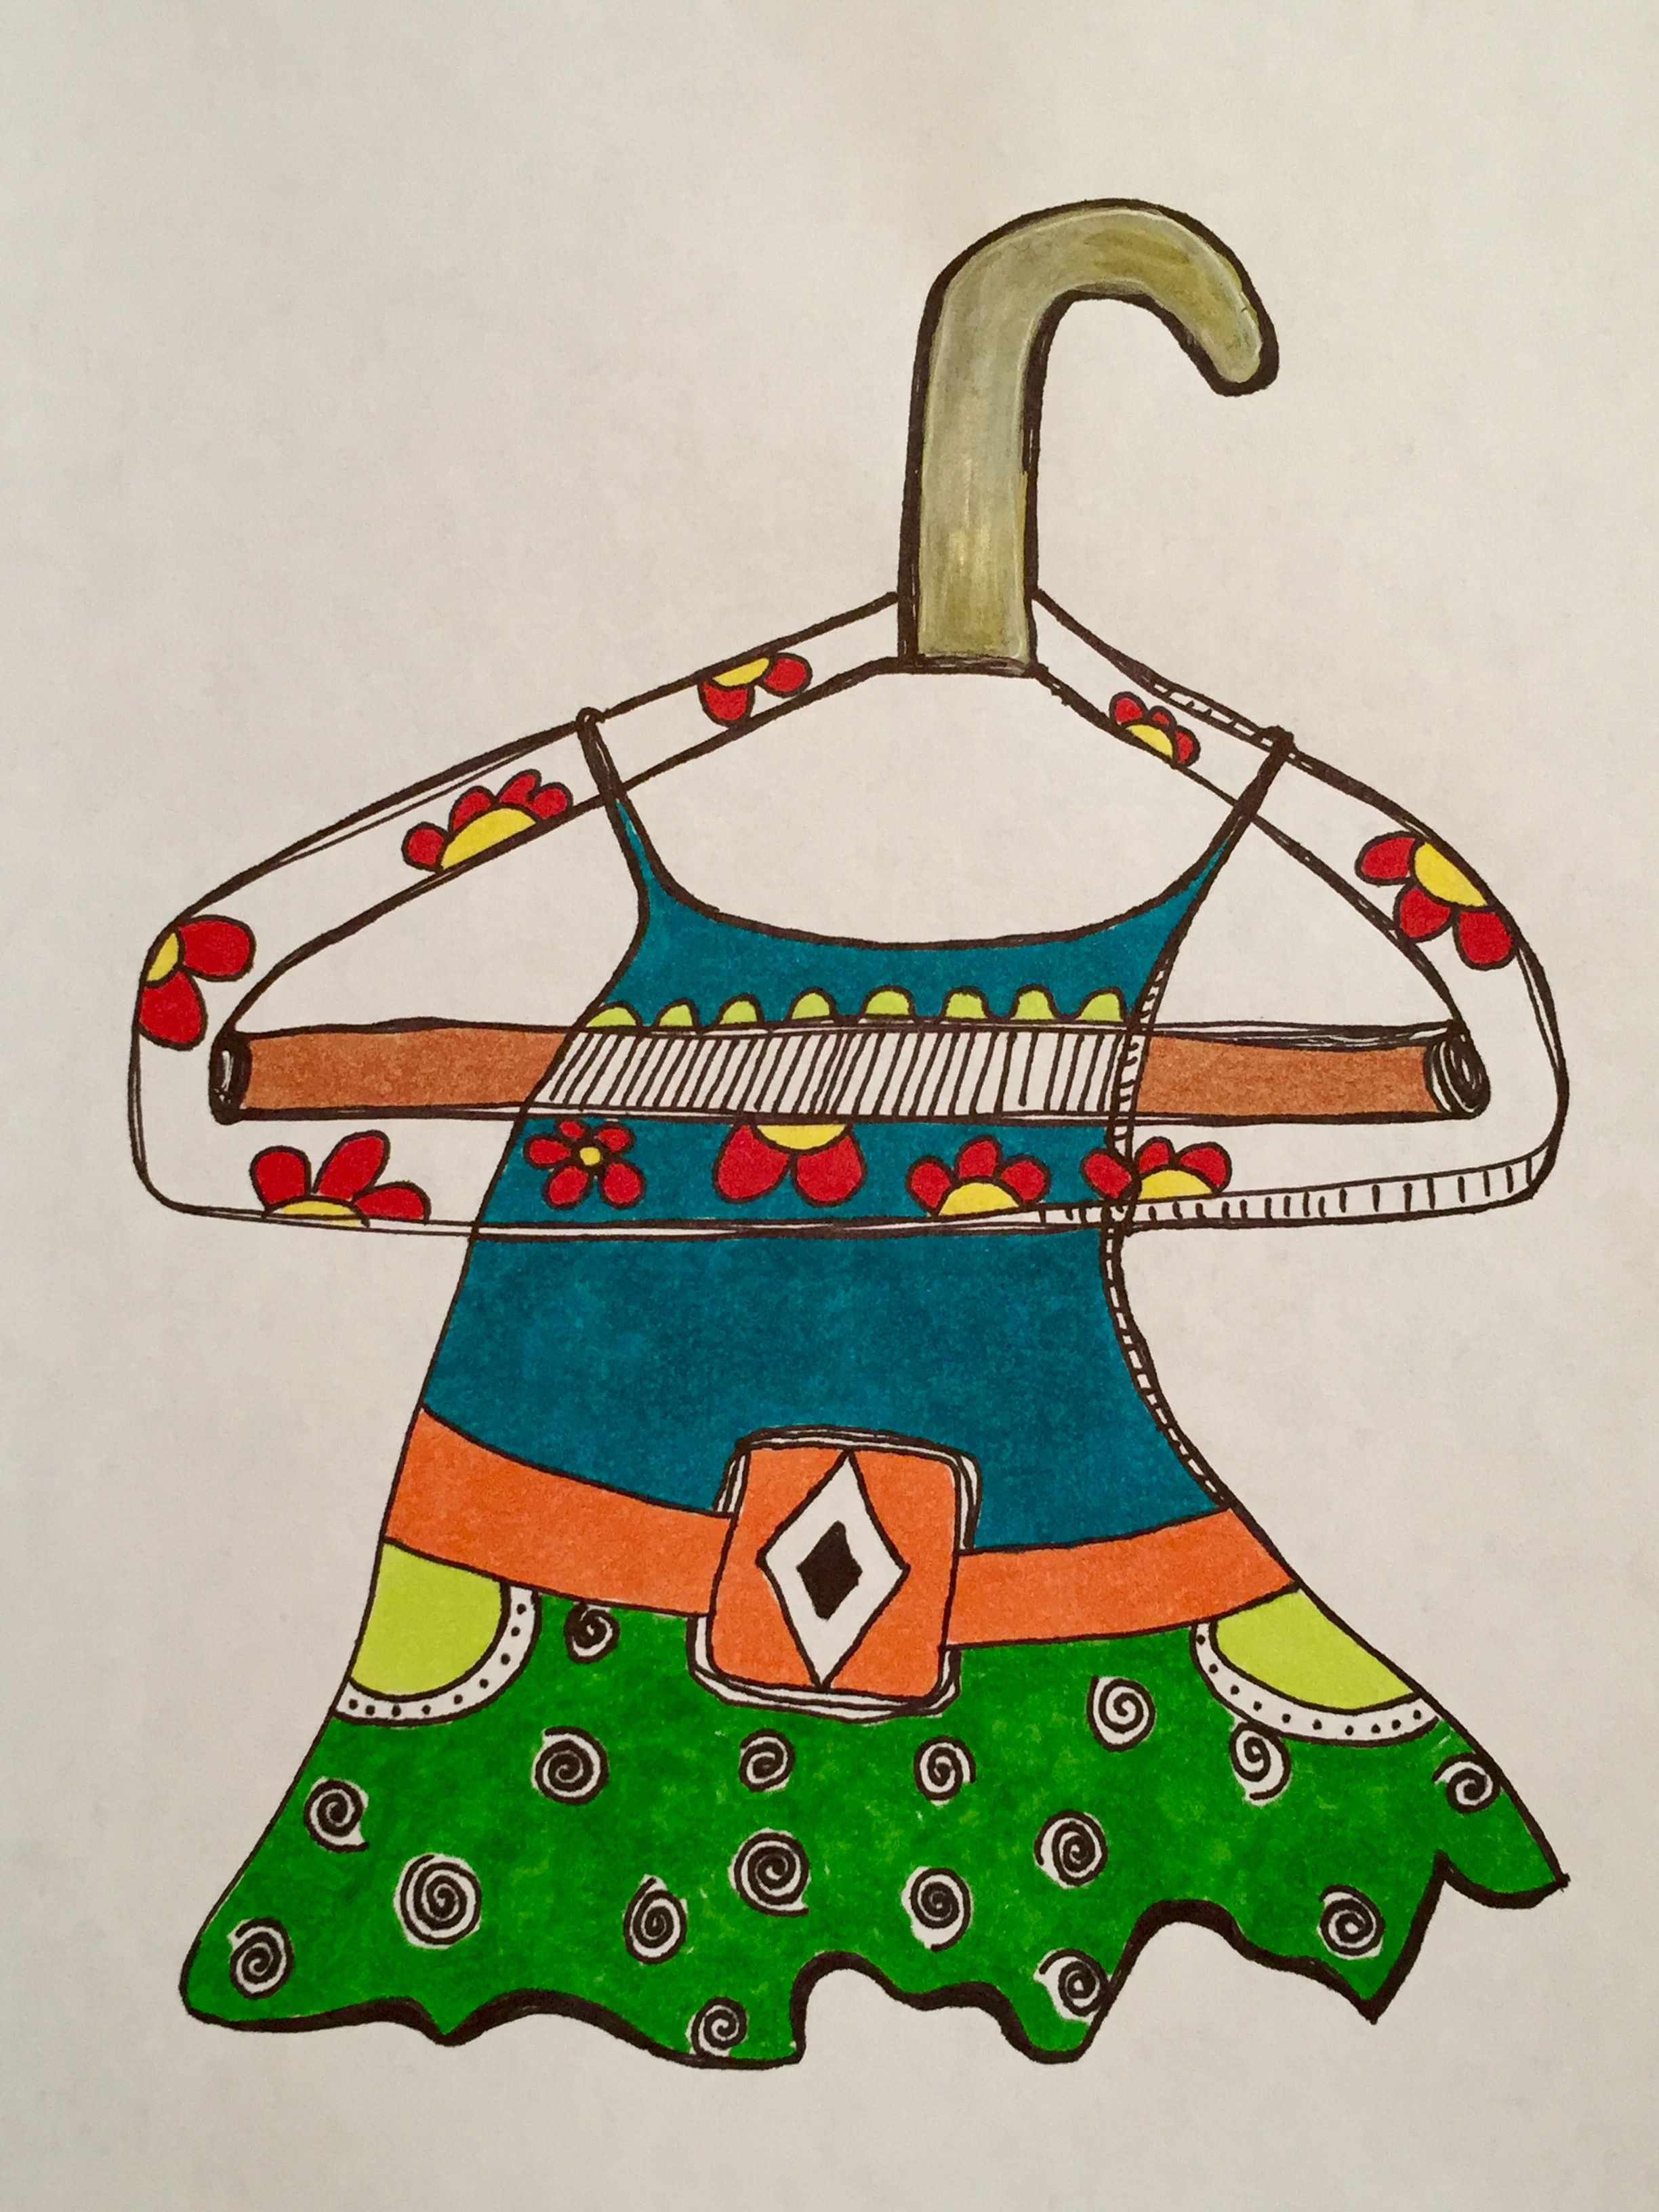 2448x3264 Dress On Hanger (Drawing) By Marisa Nisely My Art Collection